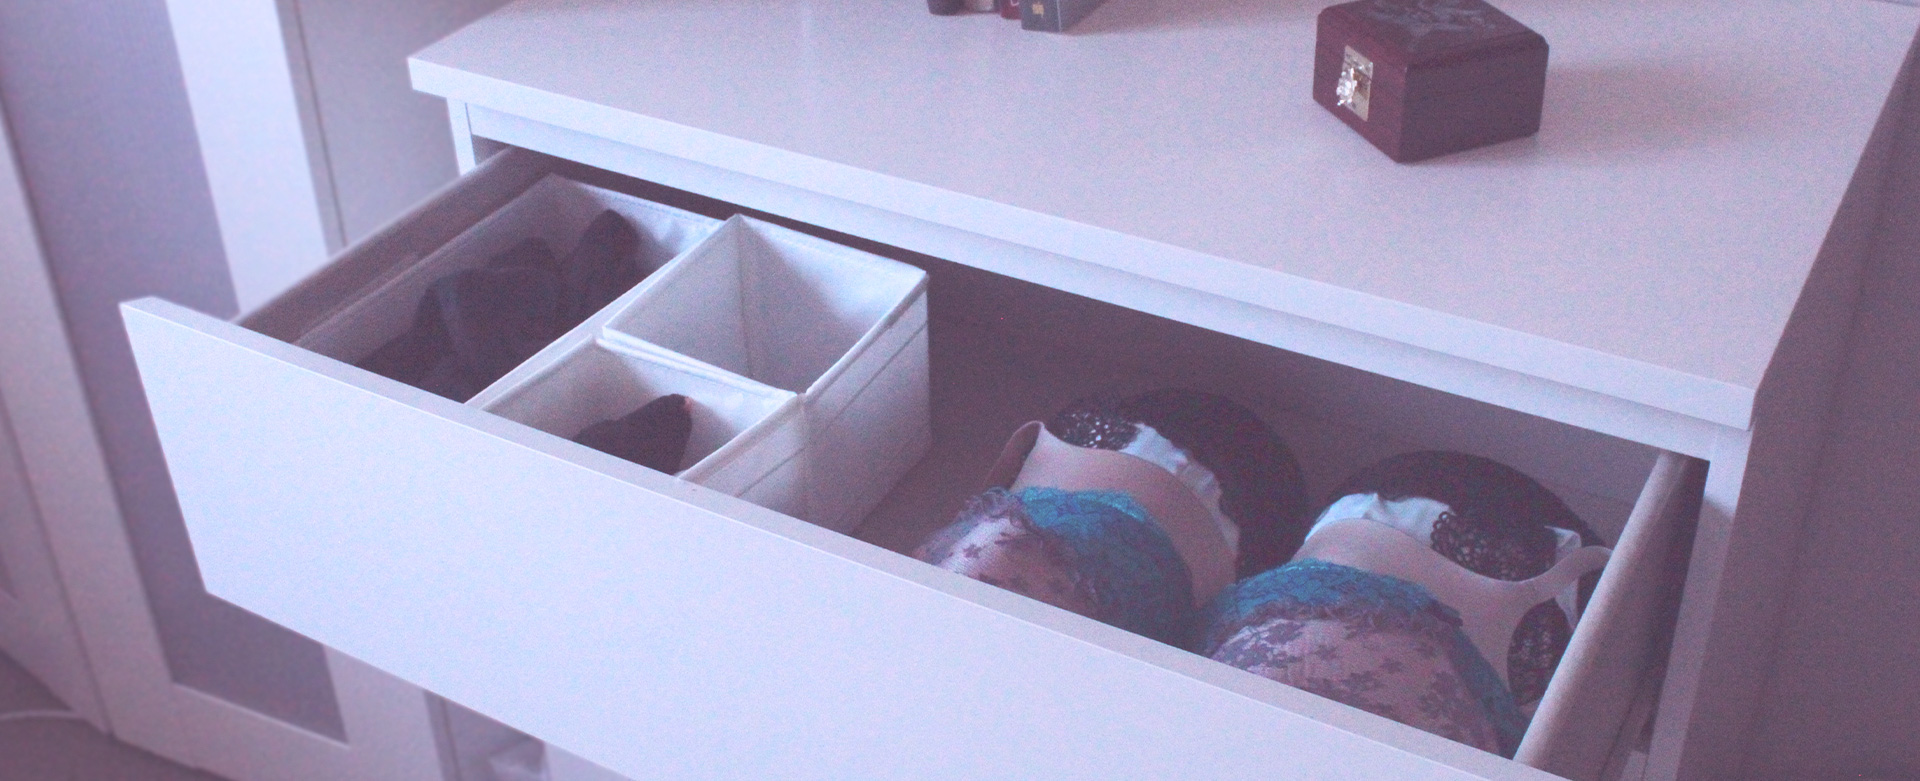 An open lingerie drawer showing a range of beautiful bras